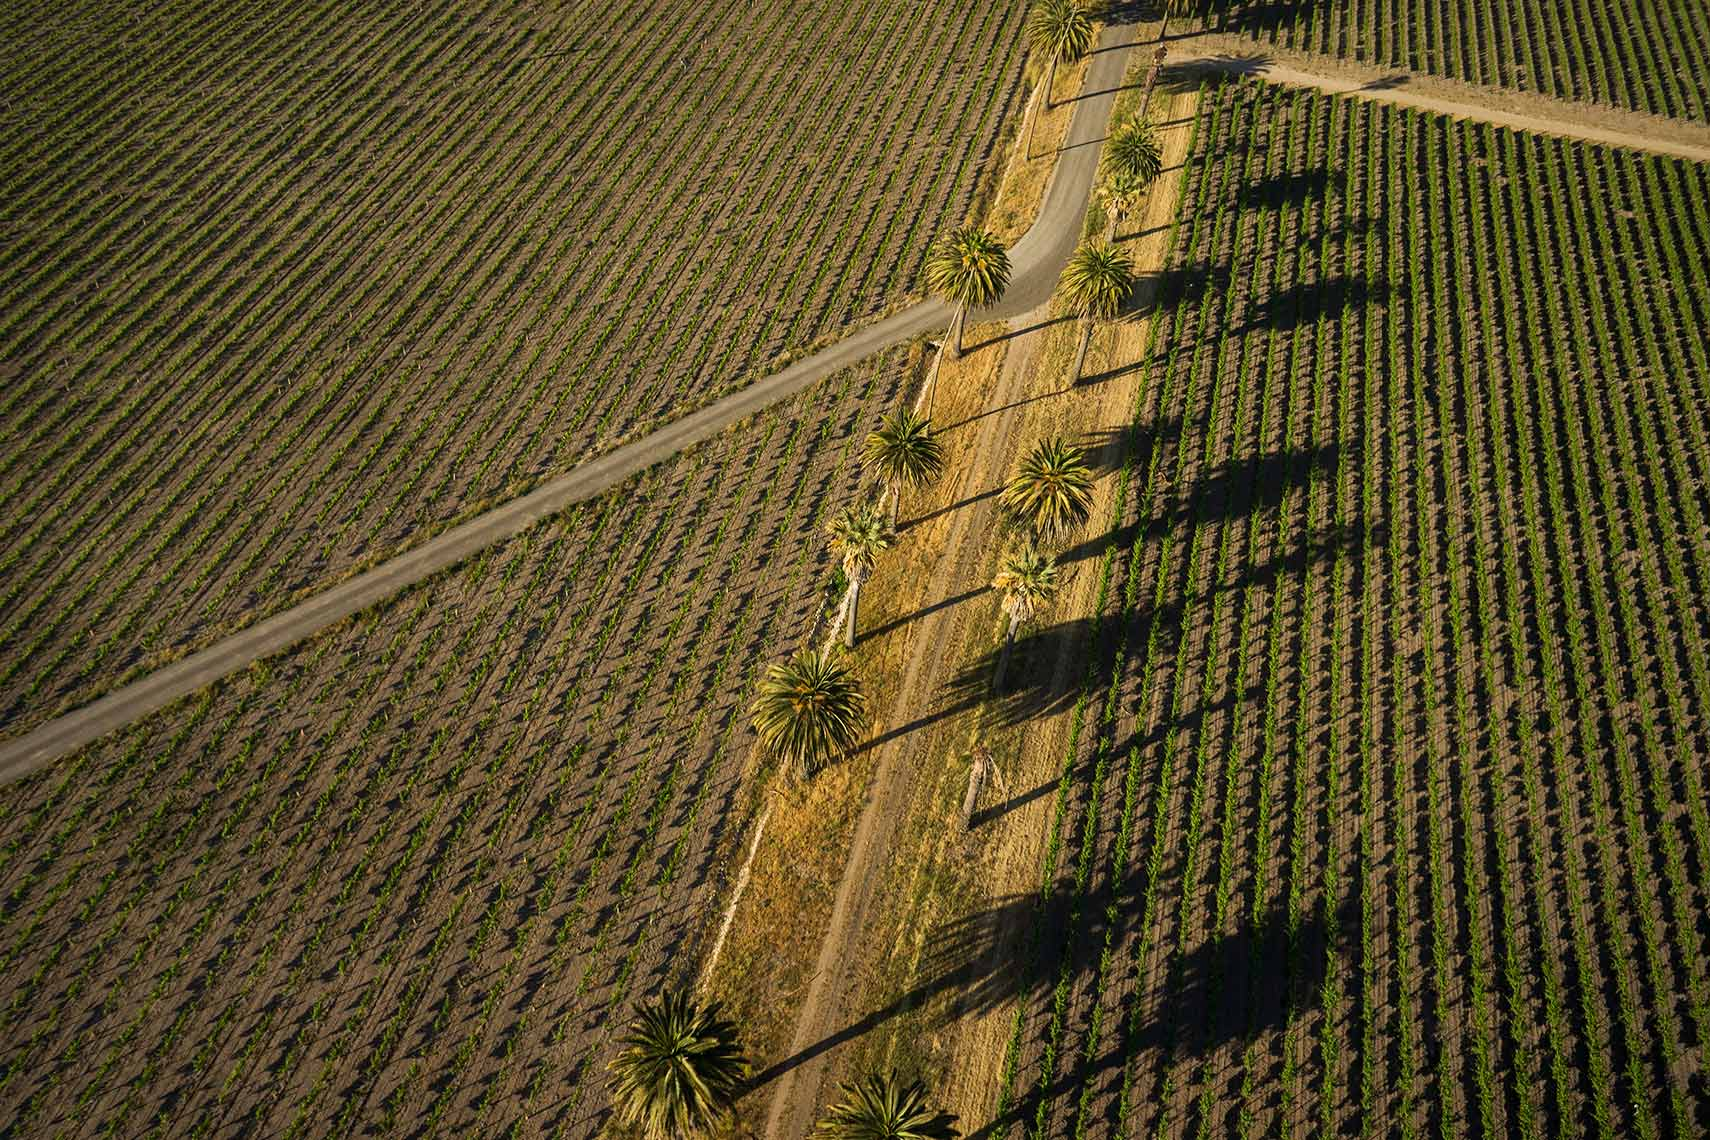 Jason Tinacci - Aerial photographer, Sonoma, California